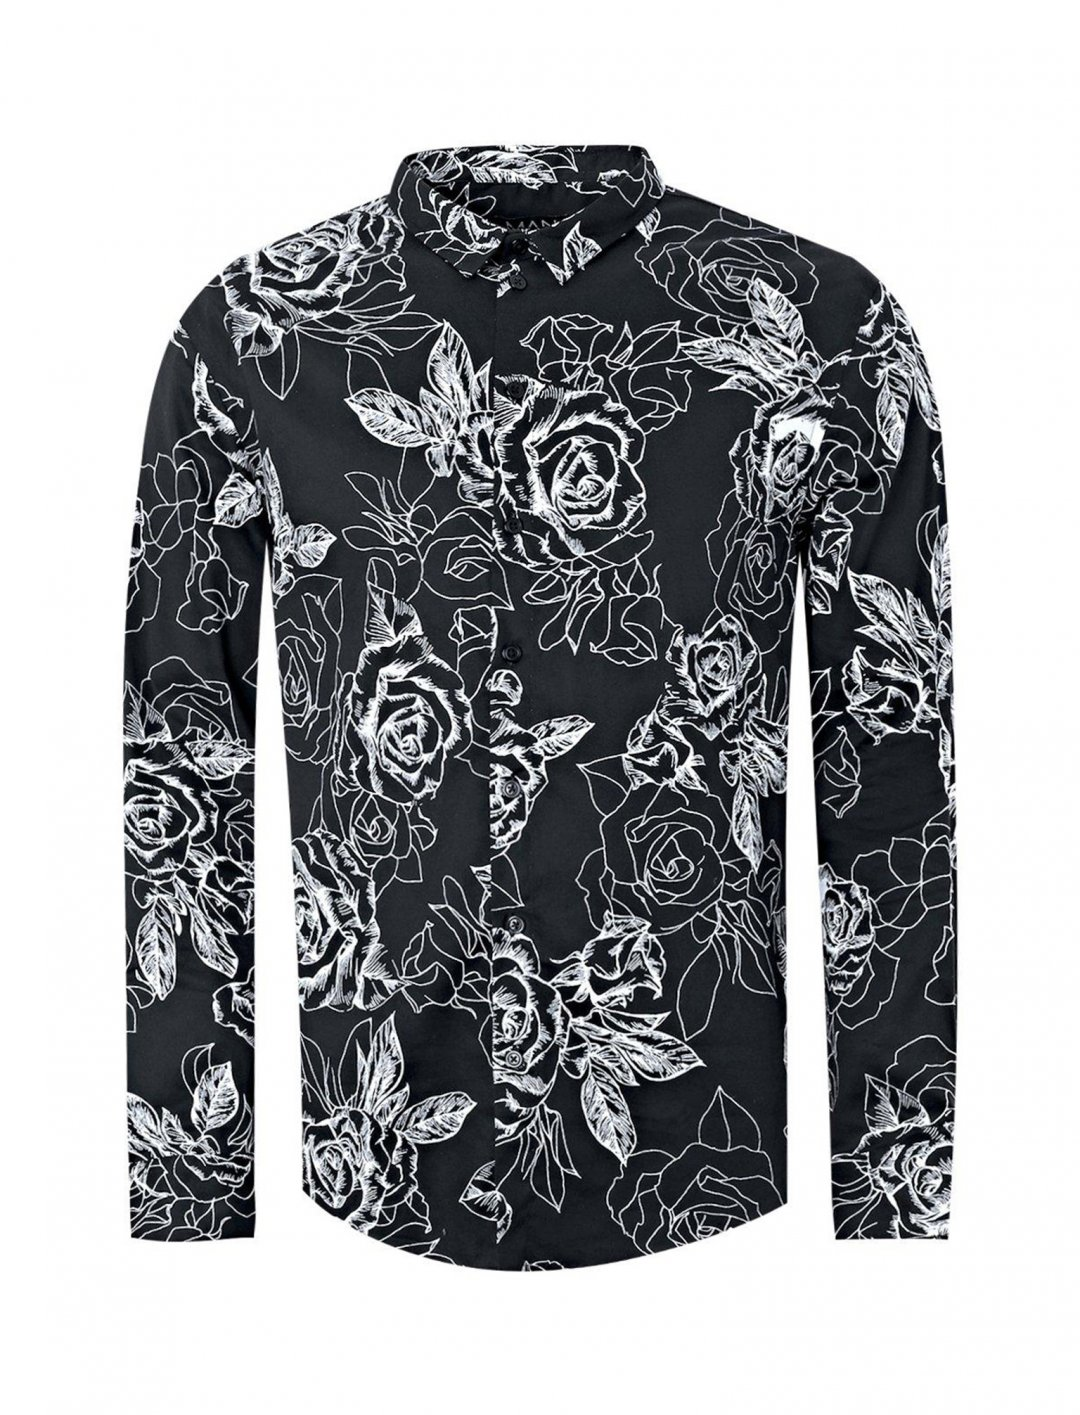 "Monochrome Rose Print Shirt {""id"":5,""product_section_id"":1,""name"":""Clothing"",""order"":5} boohoo"